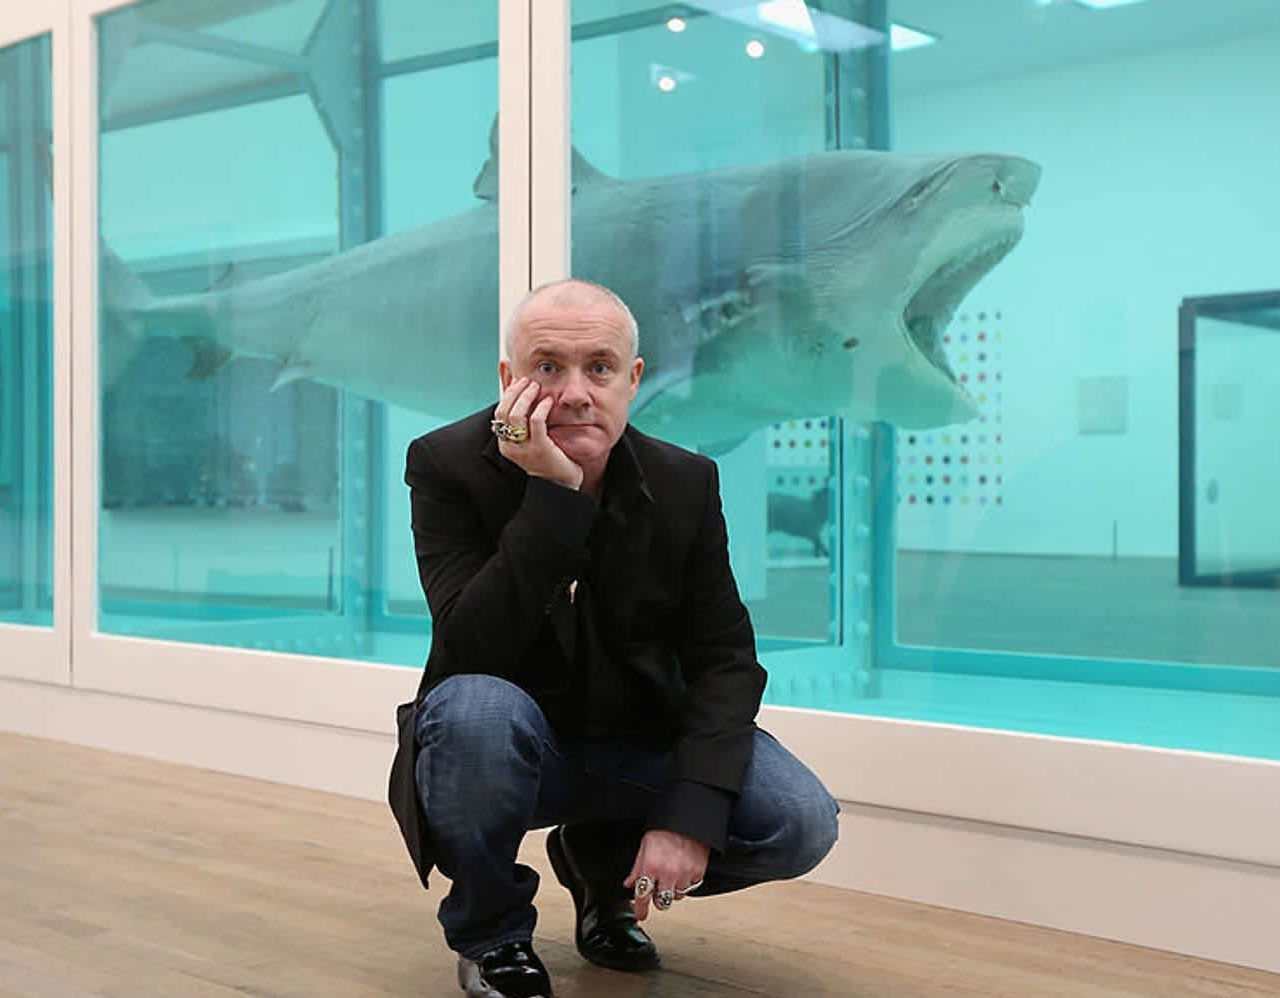 Huge Damien Hirst Exhibition Announced by Newport Street Gallery